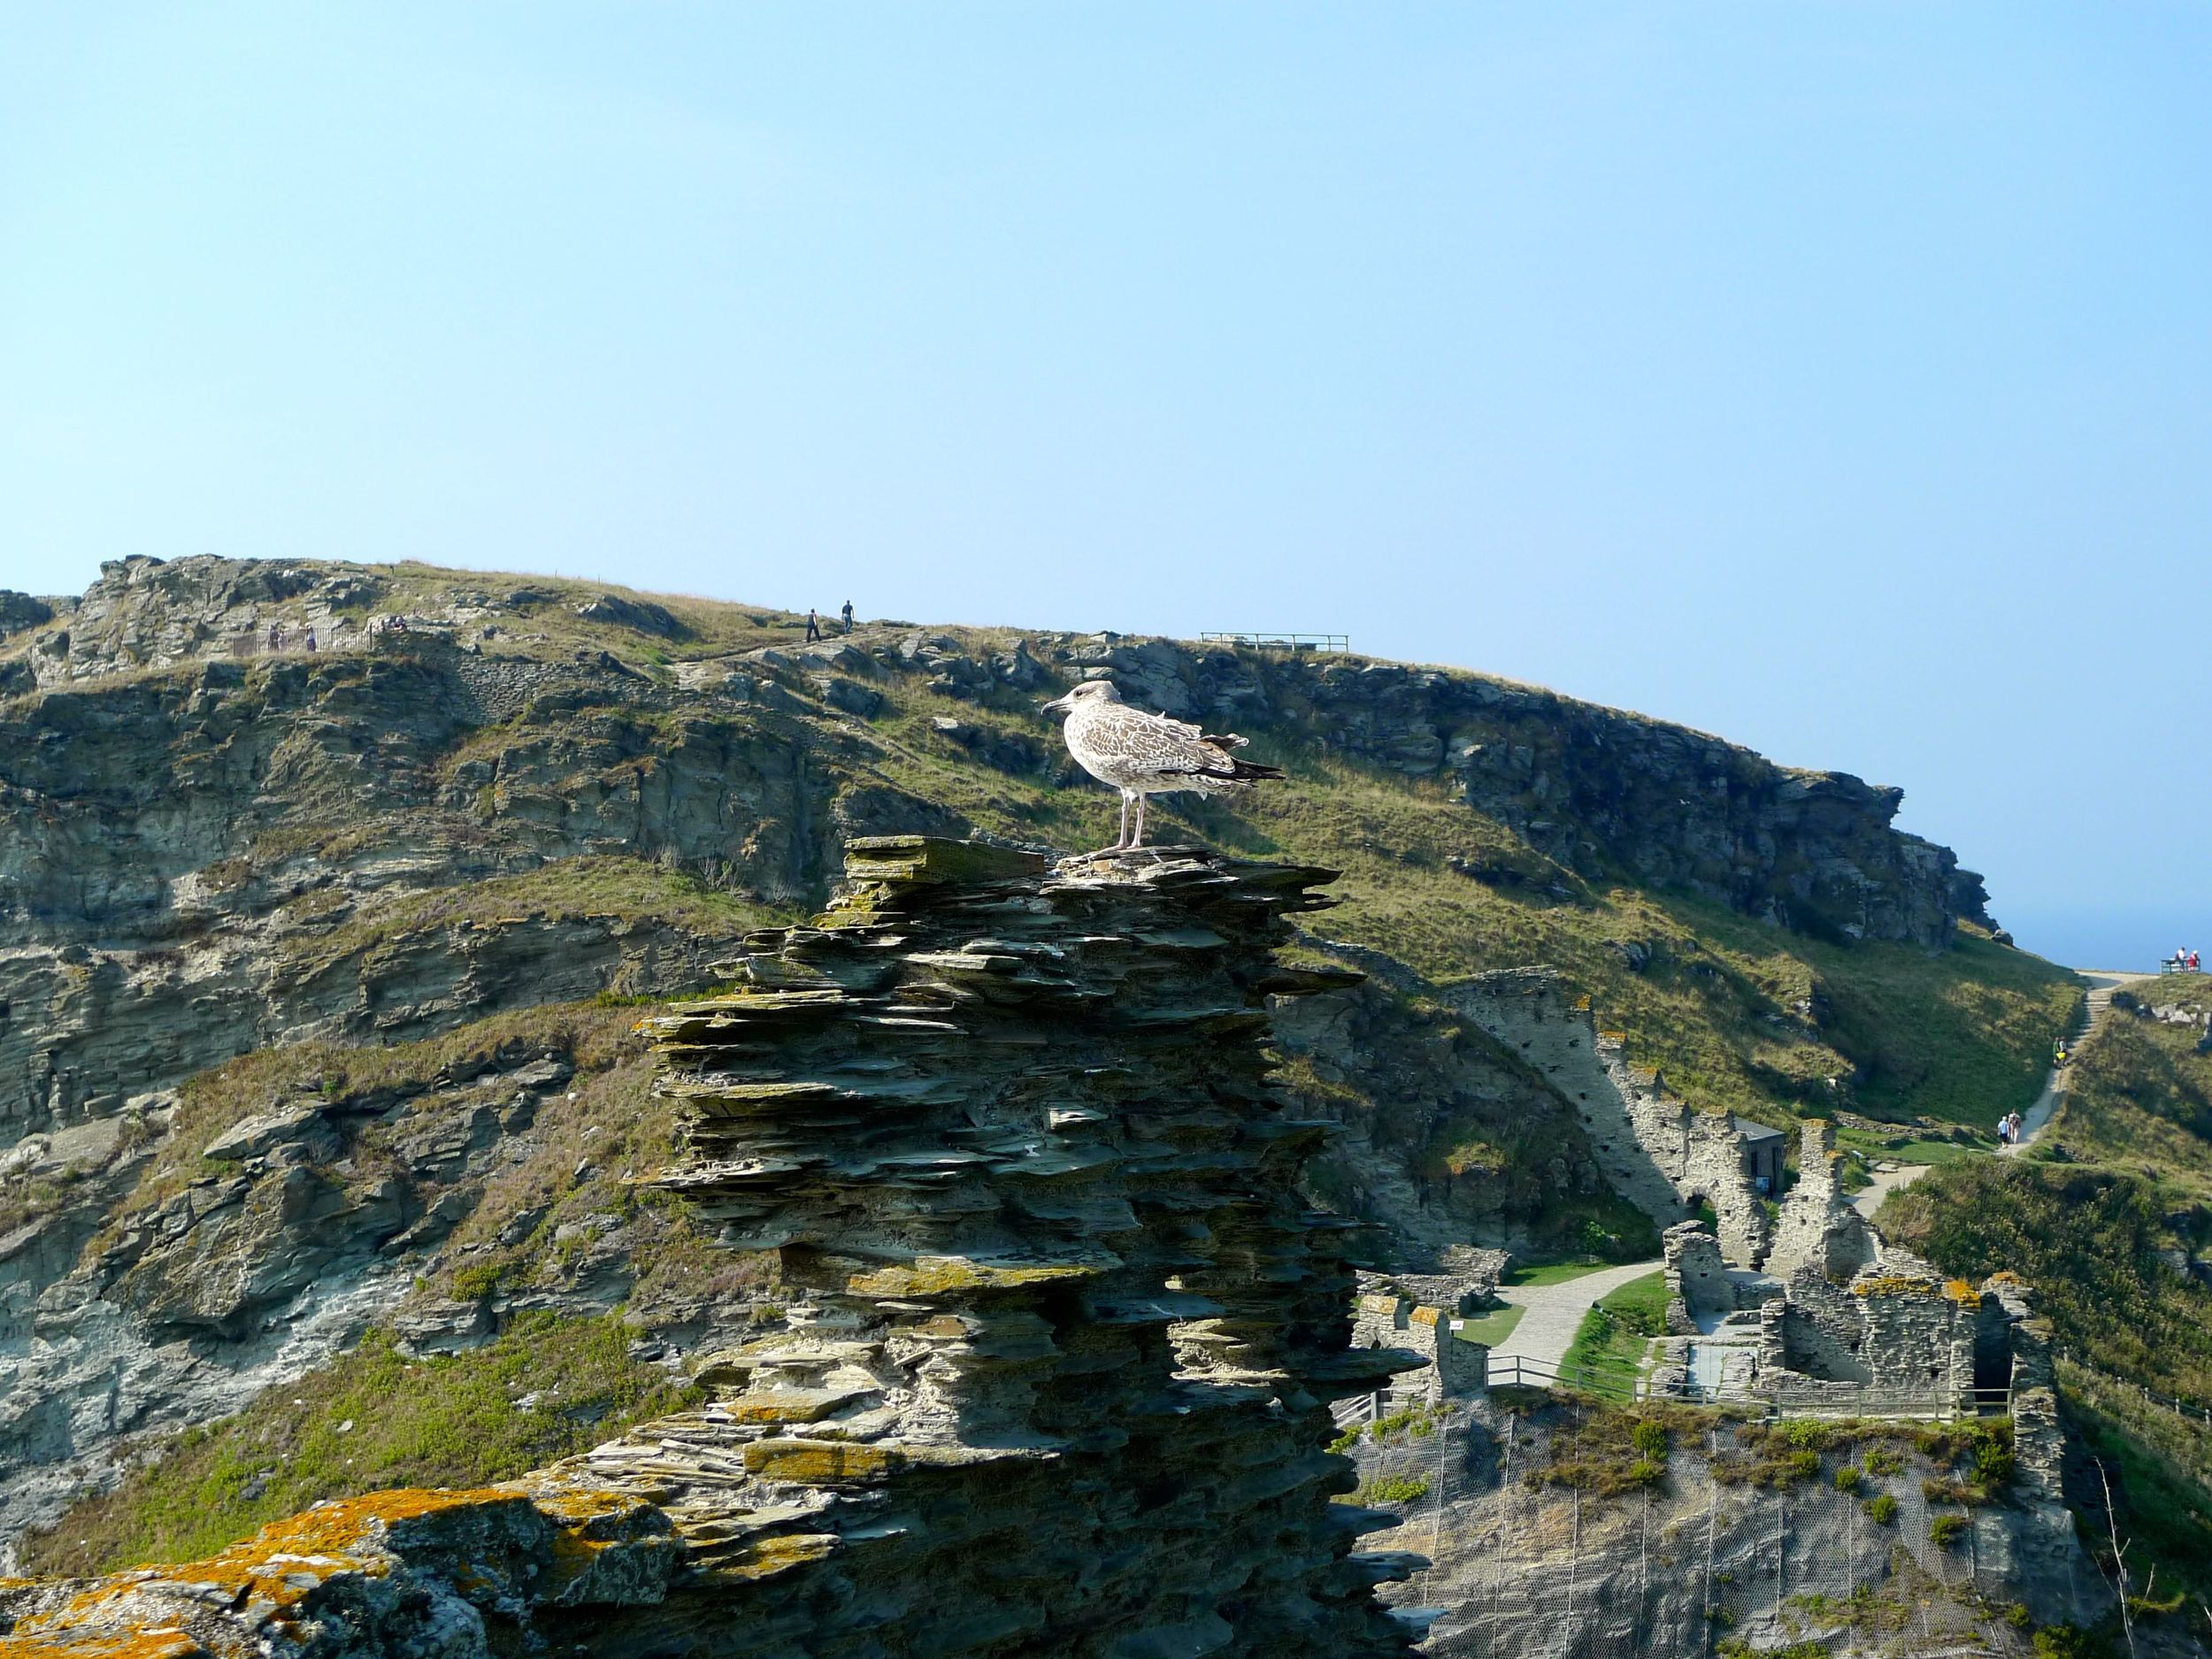 My friend the seagull at Tintagel Castle